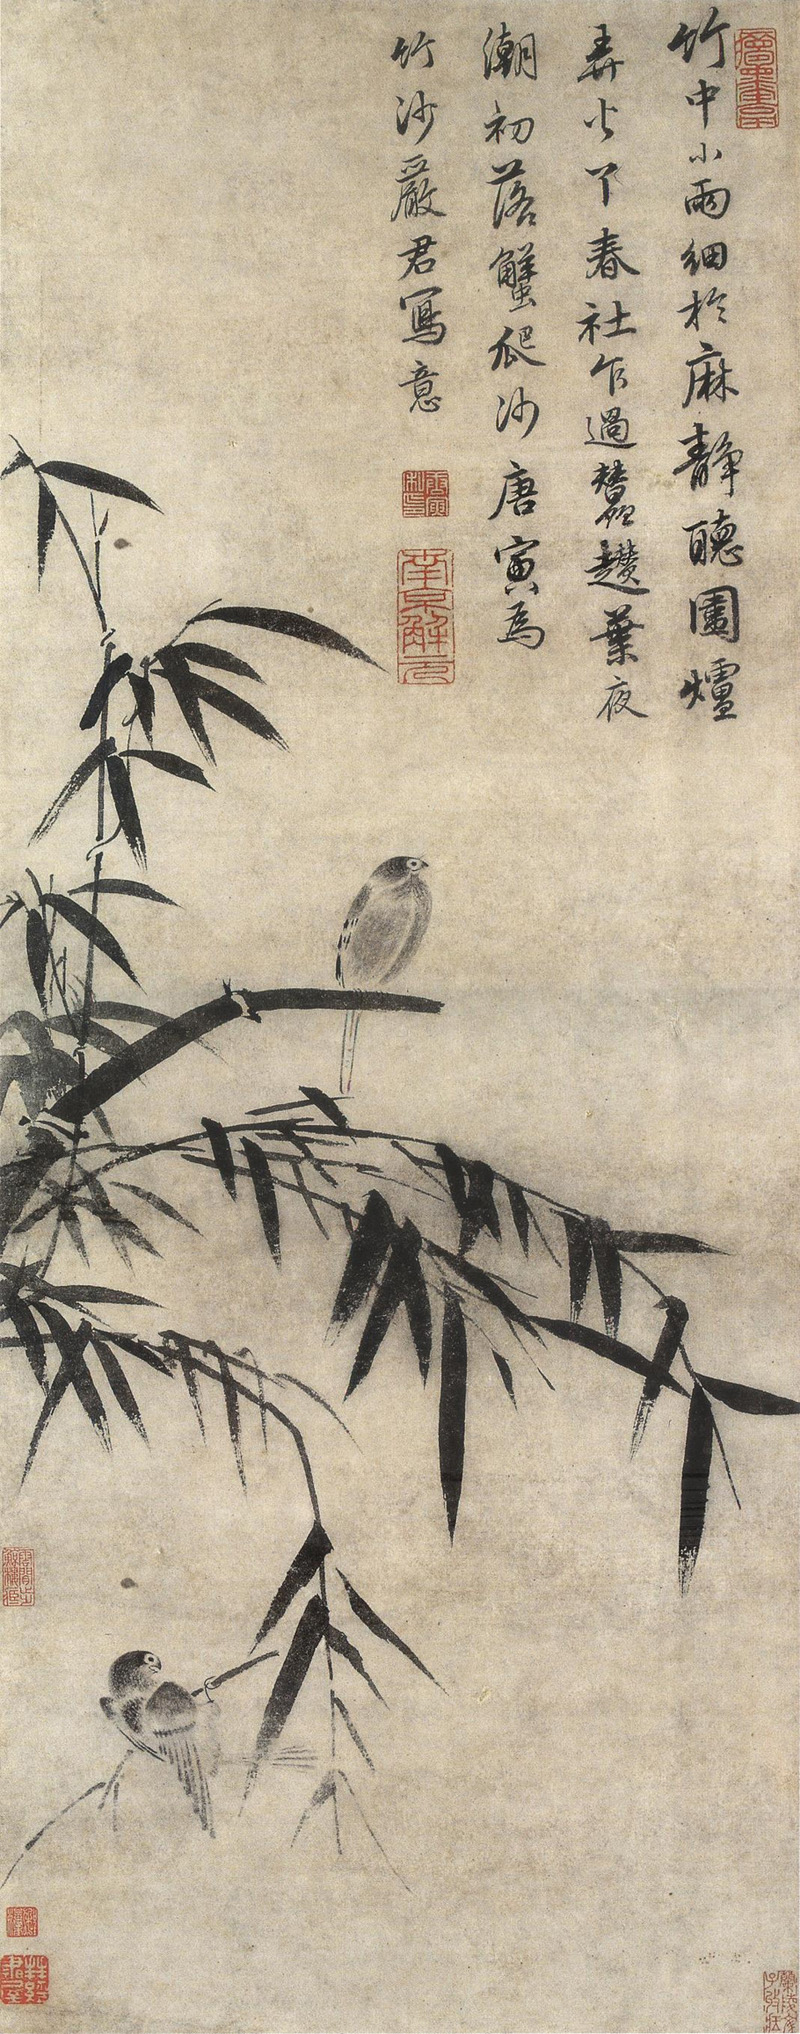 Birds and Bamboos in the Rain